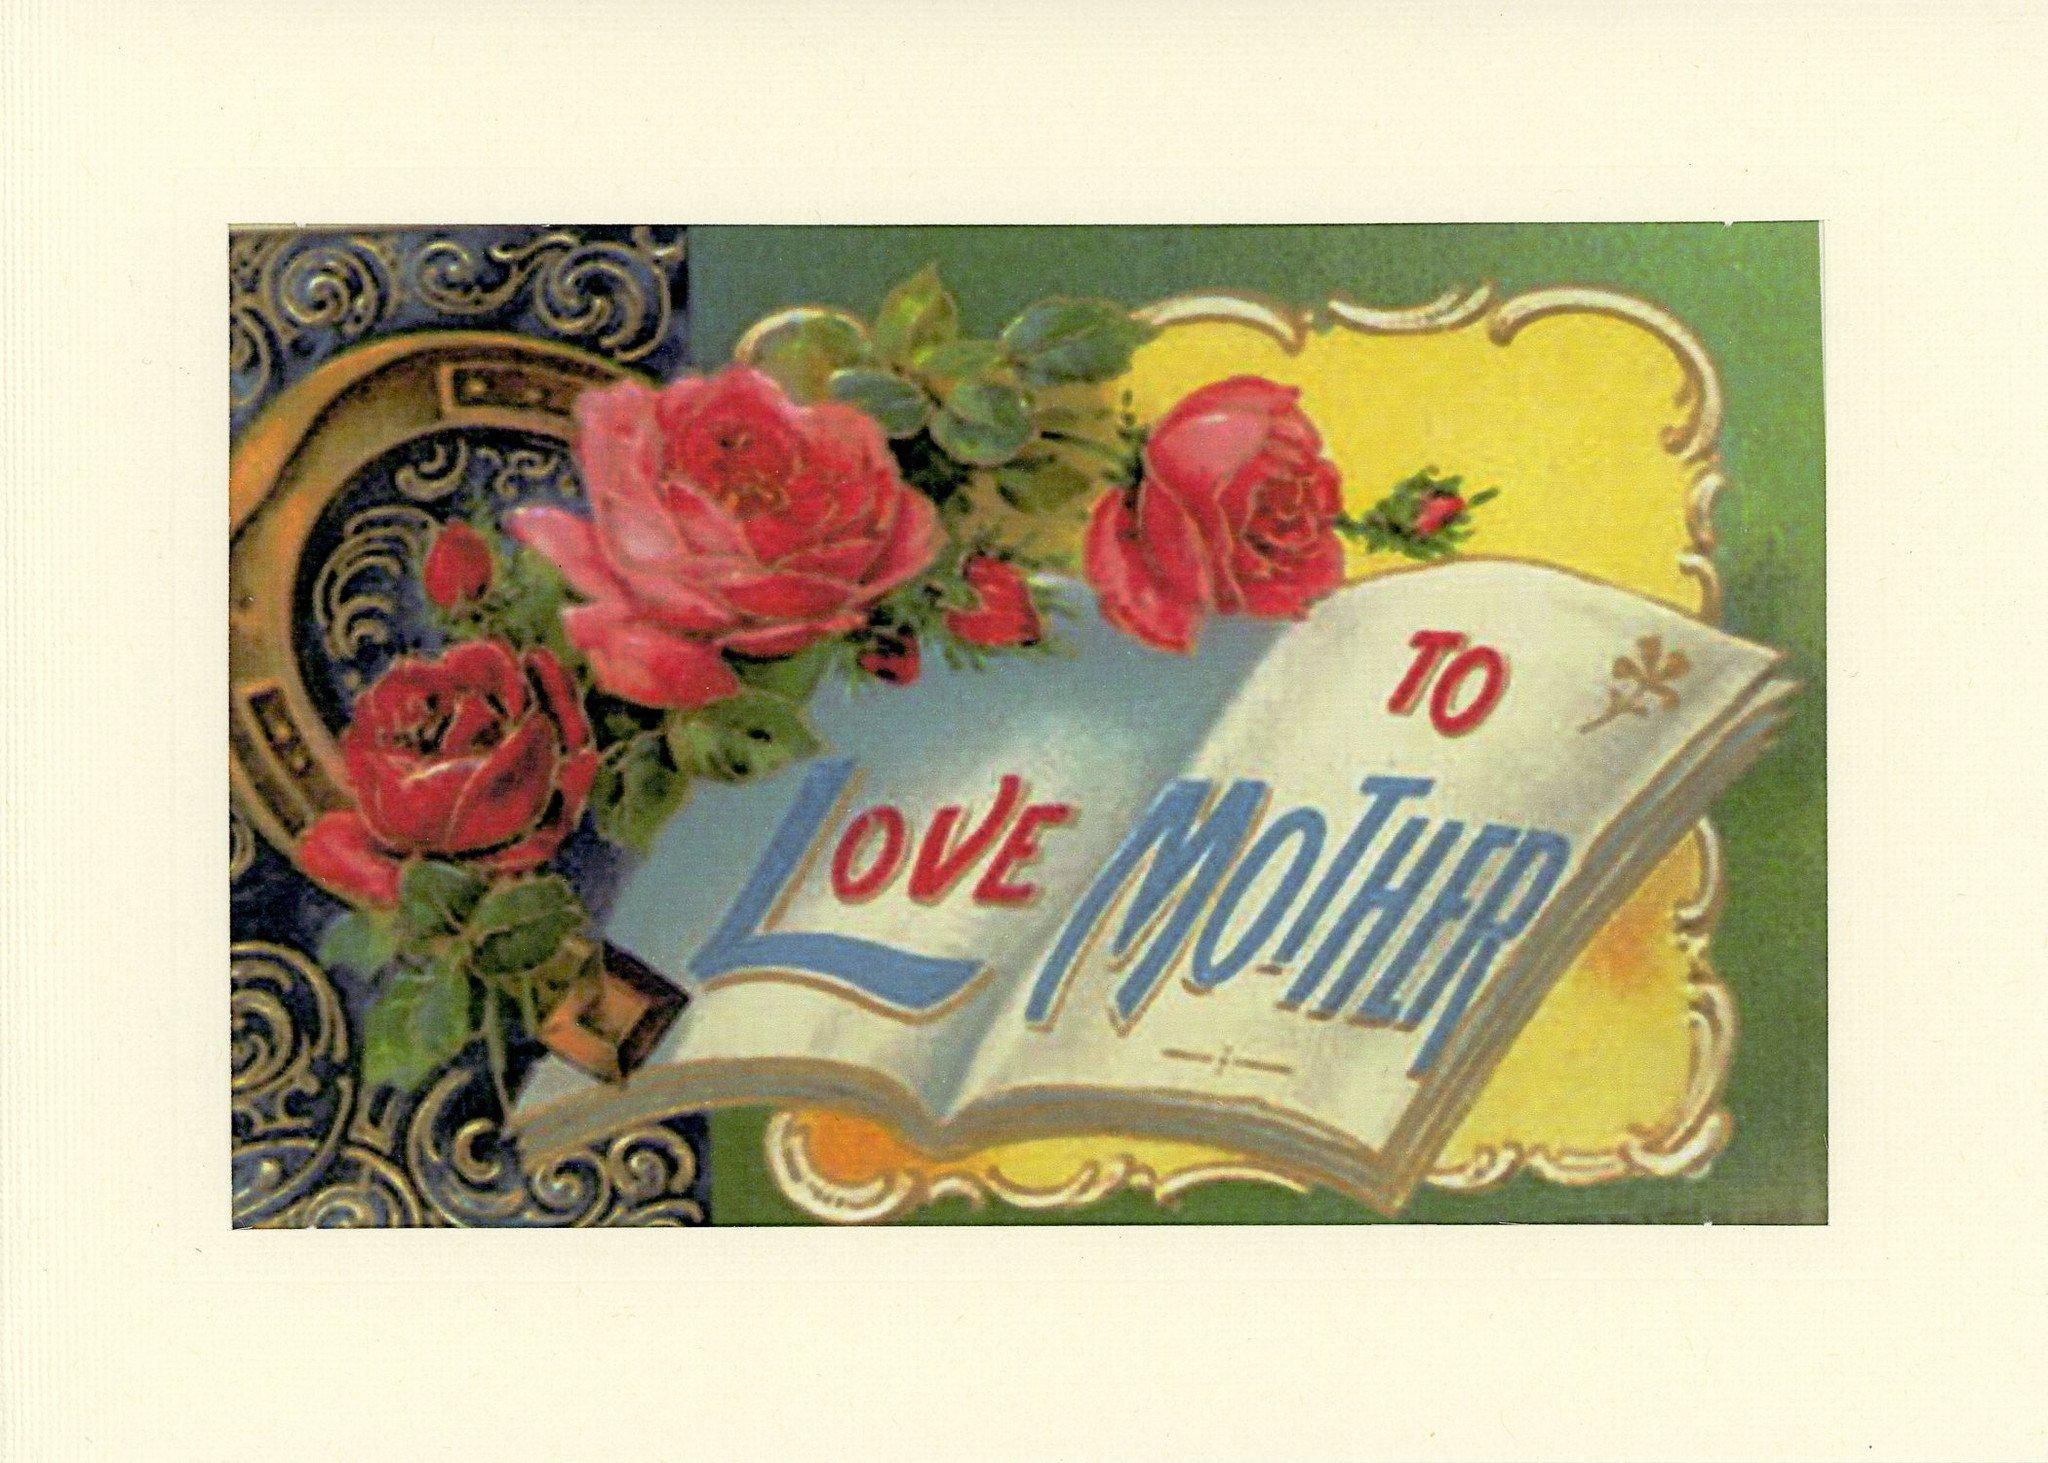 To Love Mother-Greetings from the Past-Plymouth Cards